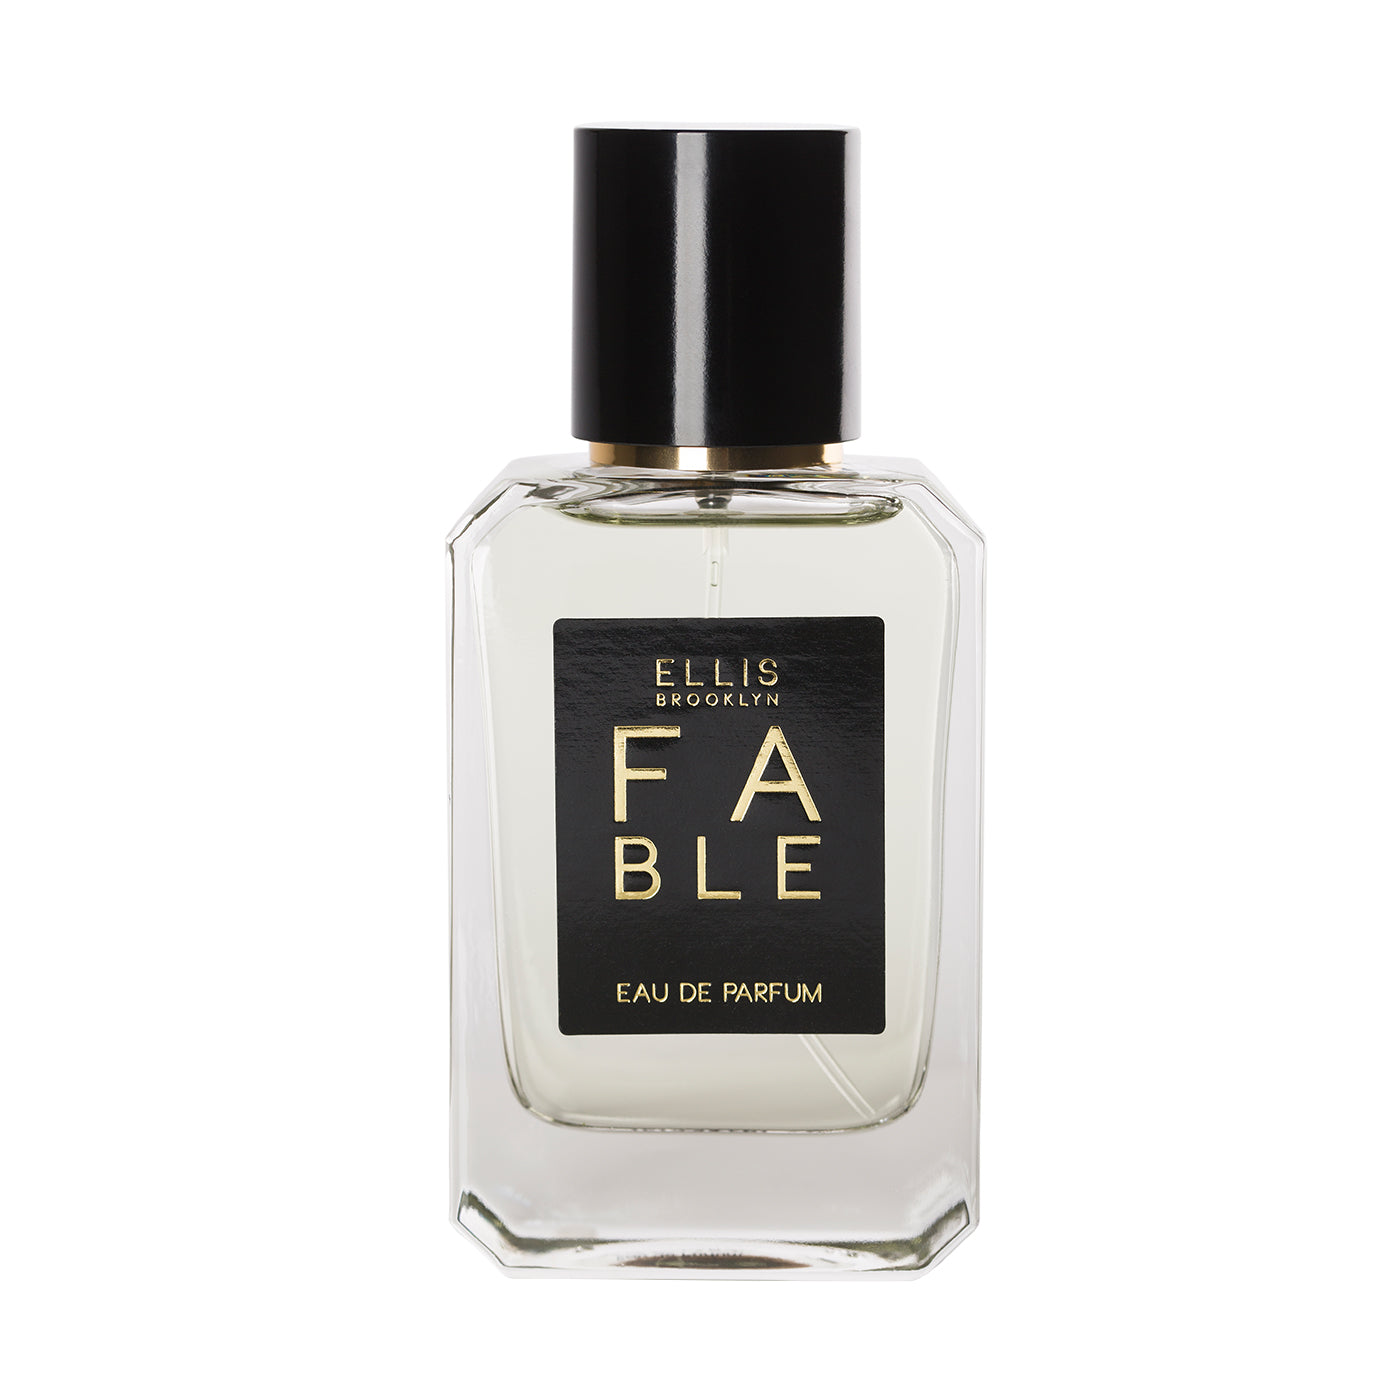 Ellis Brooklyn Eau de Parfum - Fable